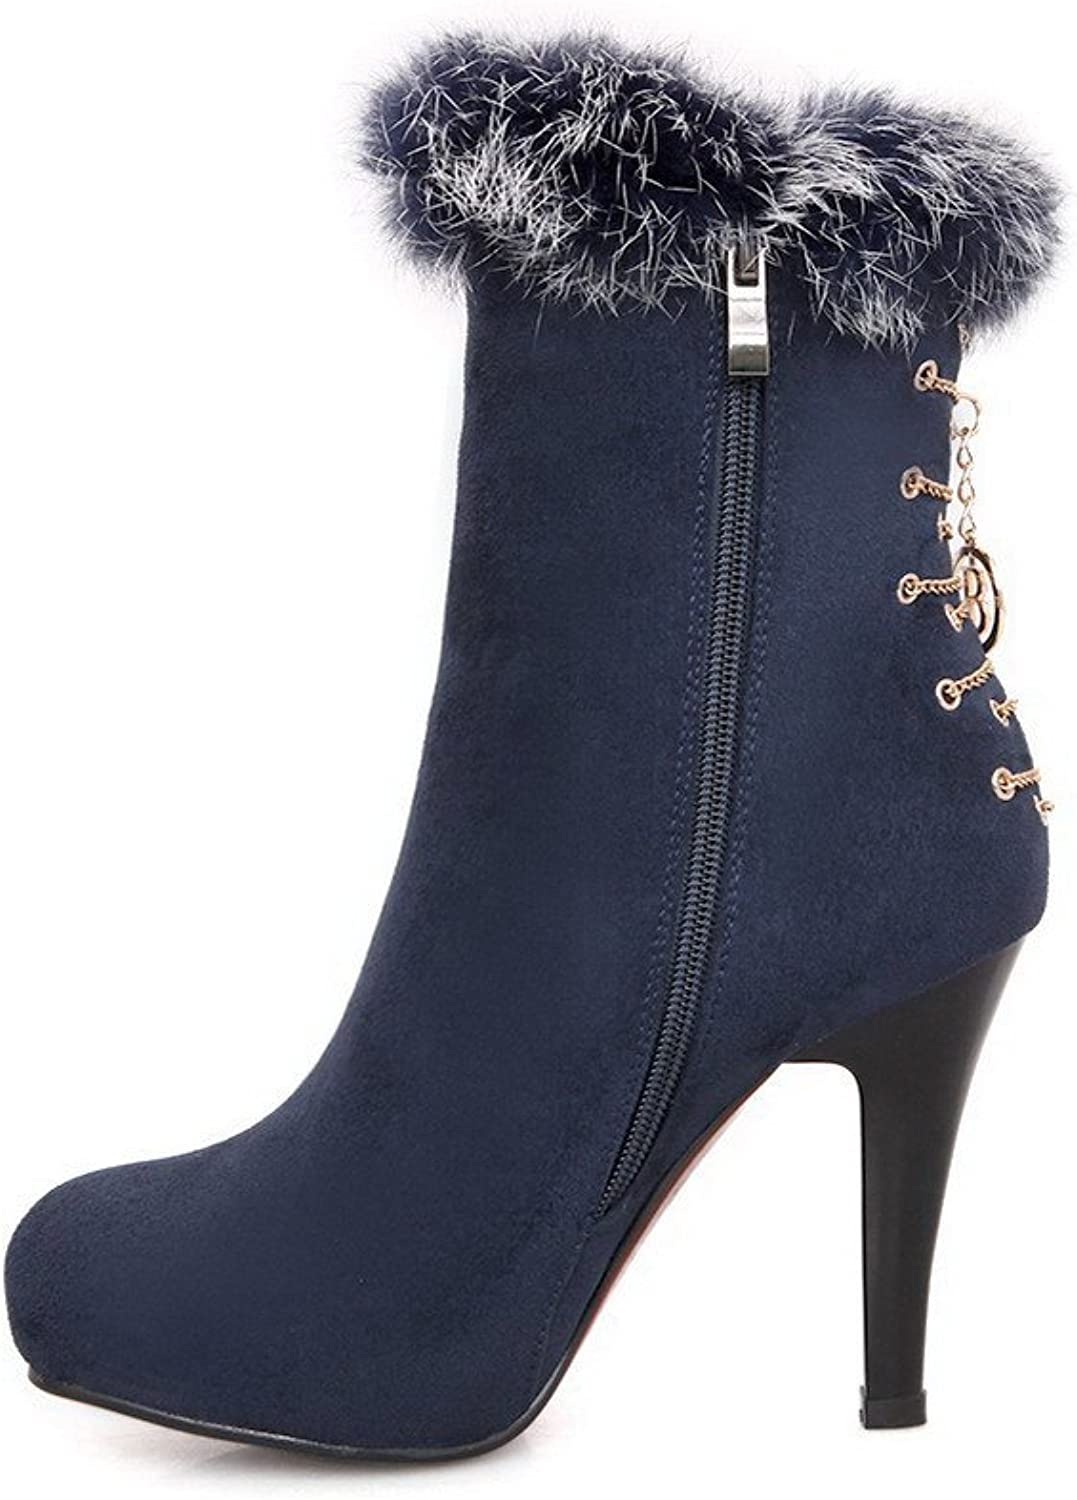 QueenFashion Women's Close Round Toe Platform Metal Chains Cone Heels Frosting Leather Ankle High Boots with Zippers